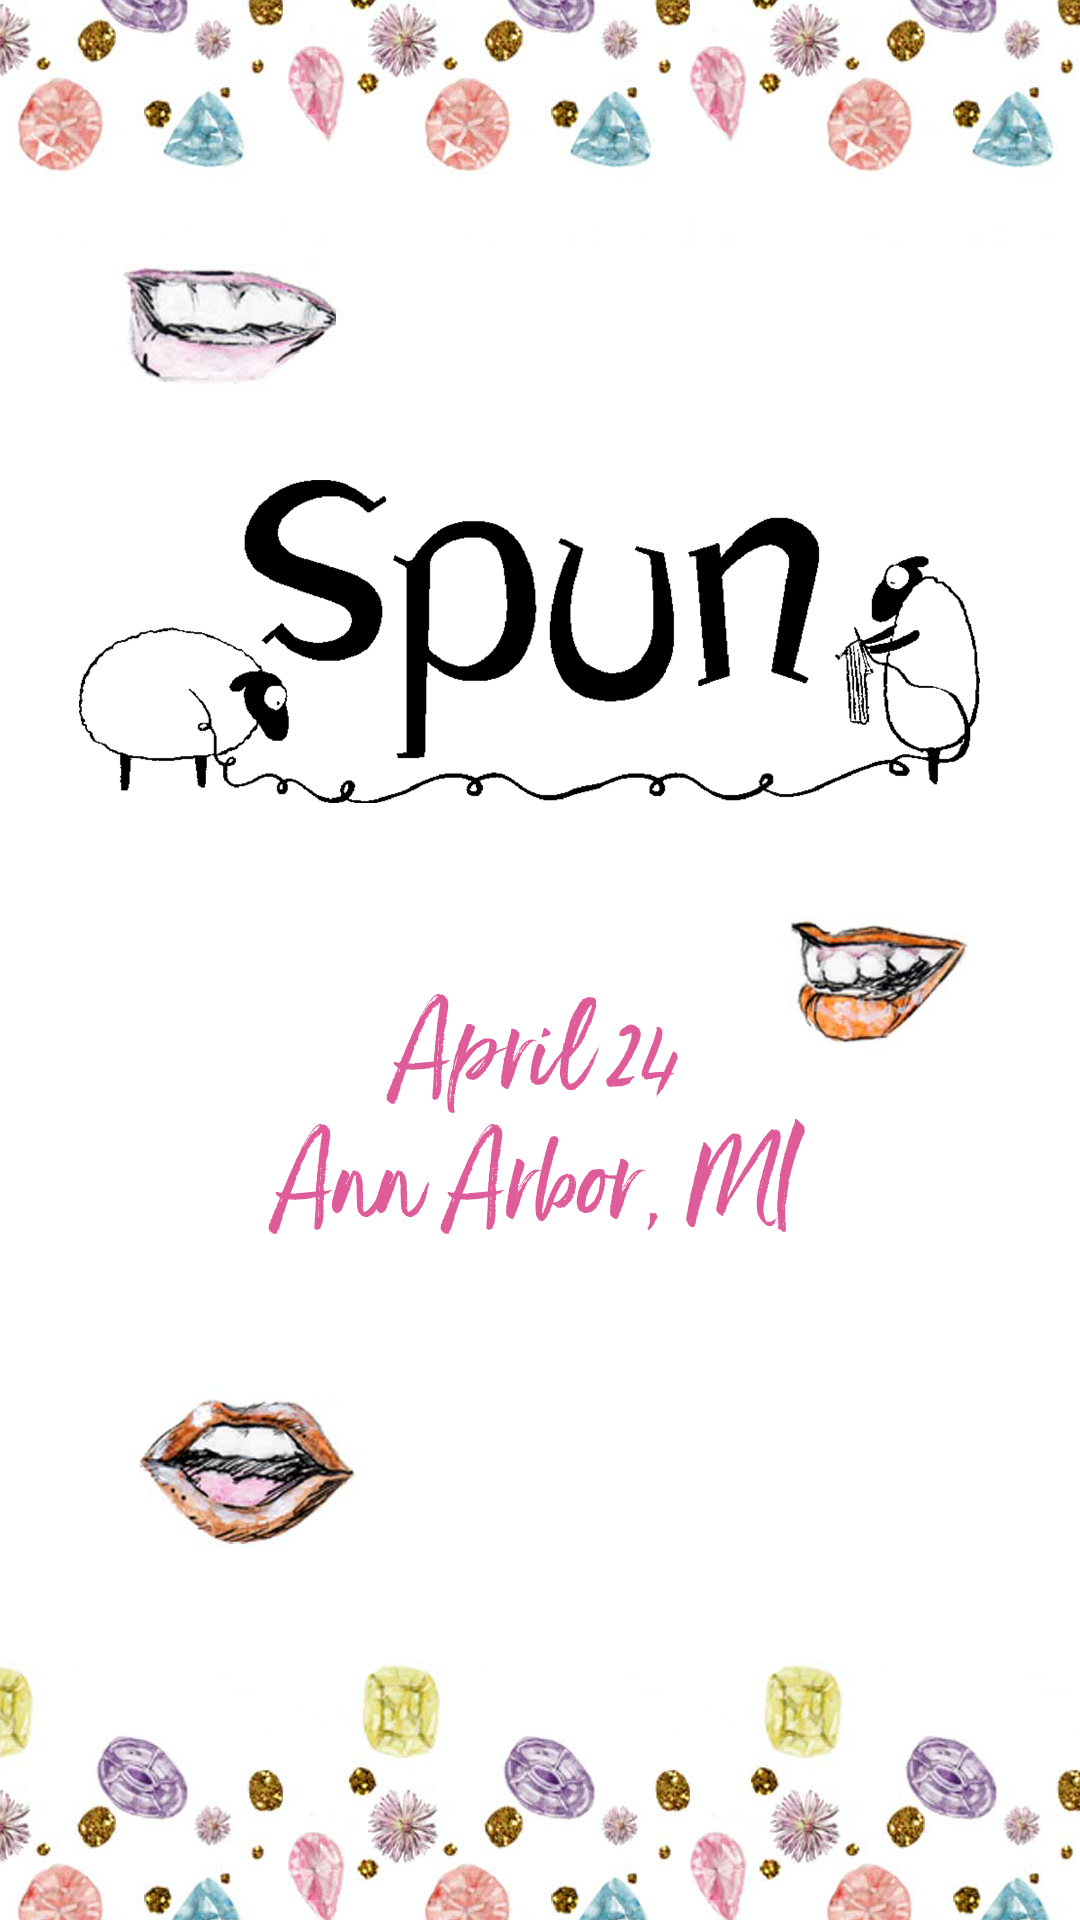 Book Signing at Spun Ann Arbor, MI